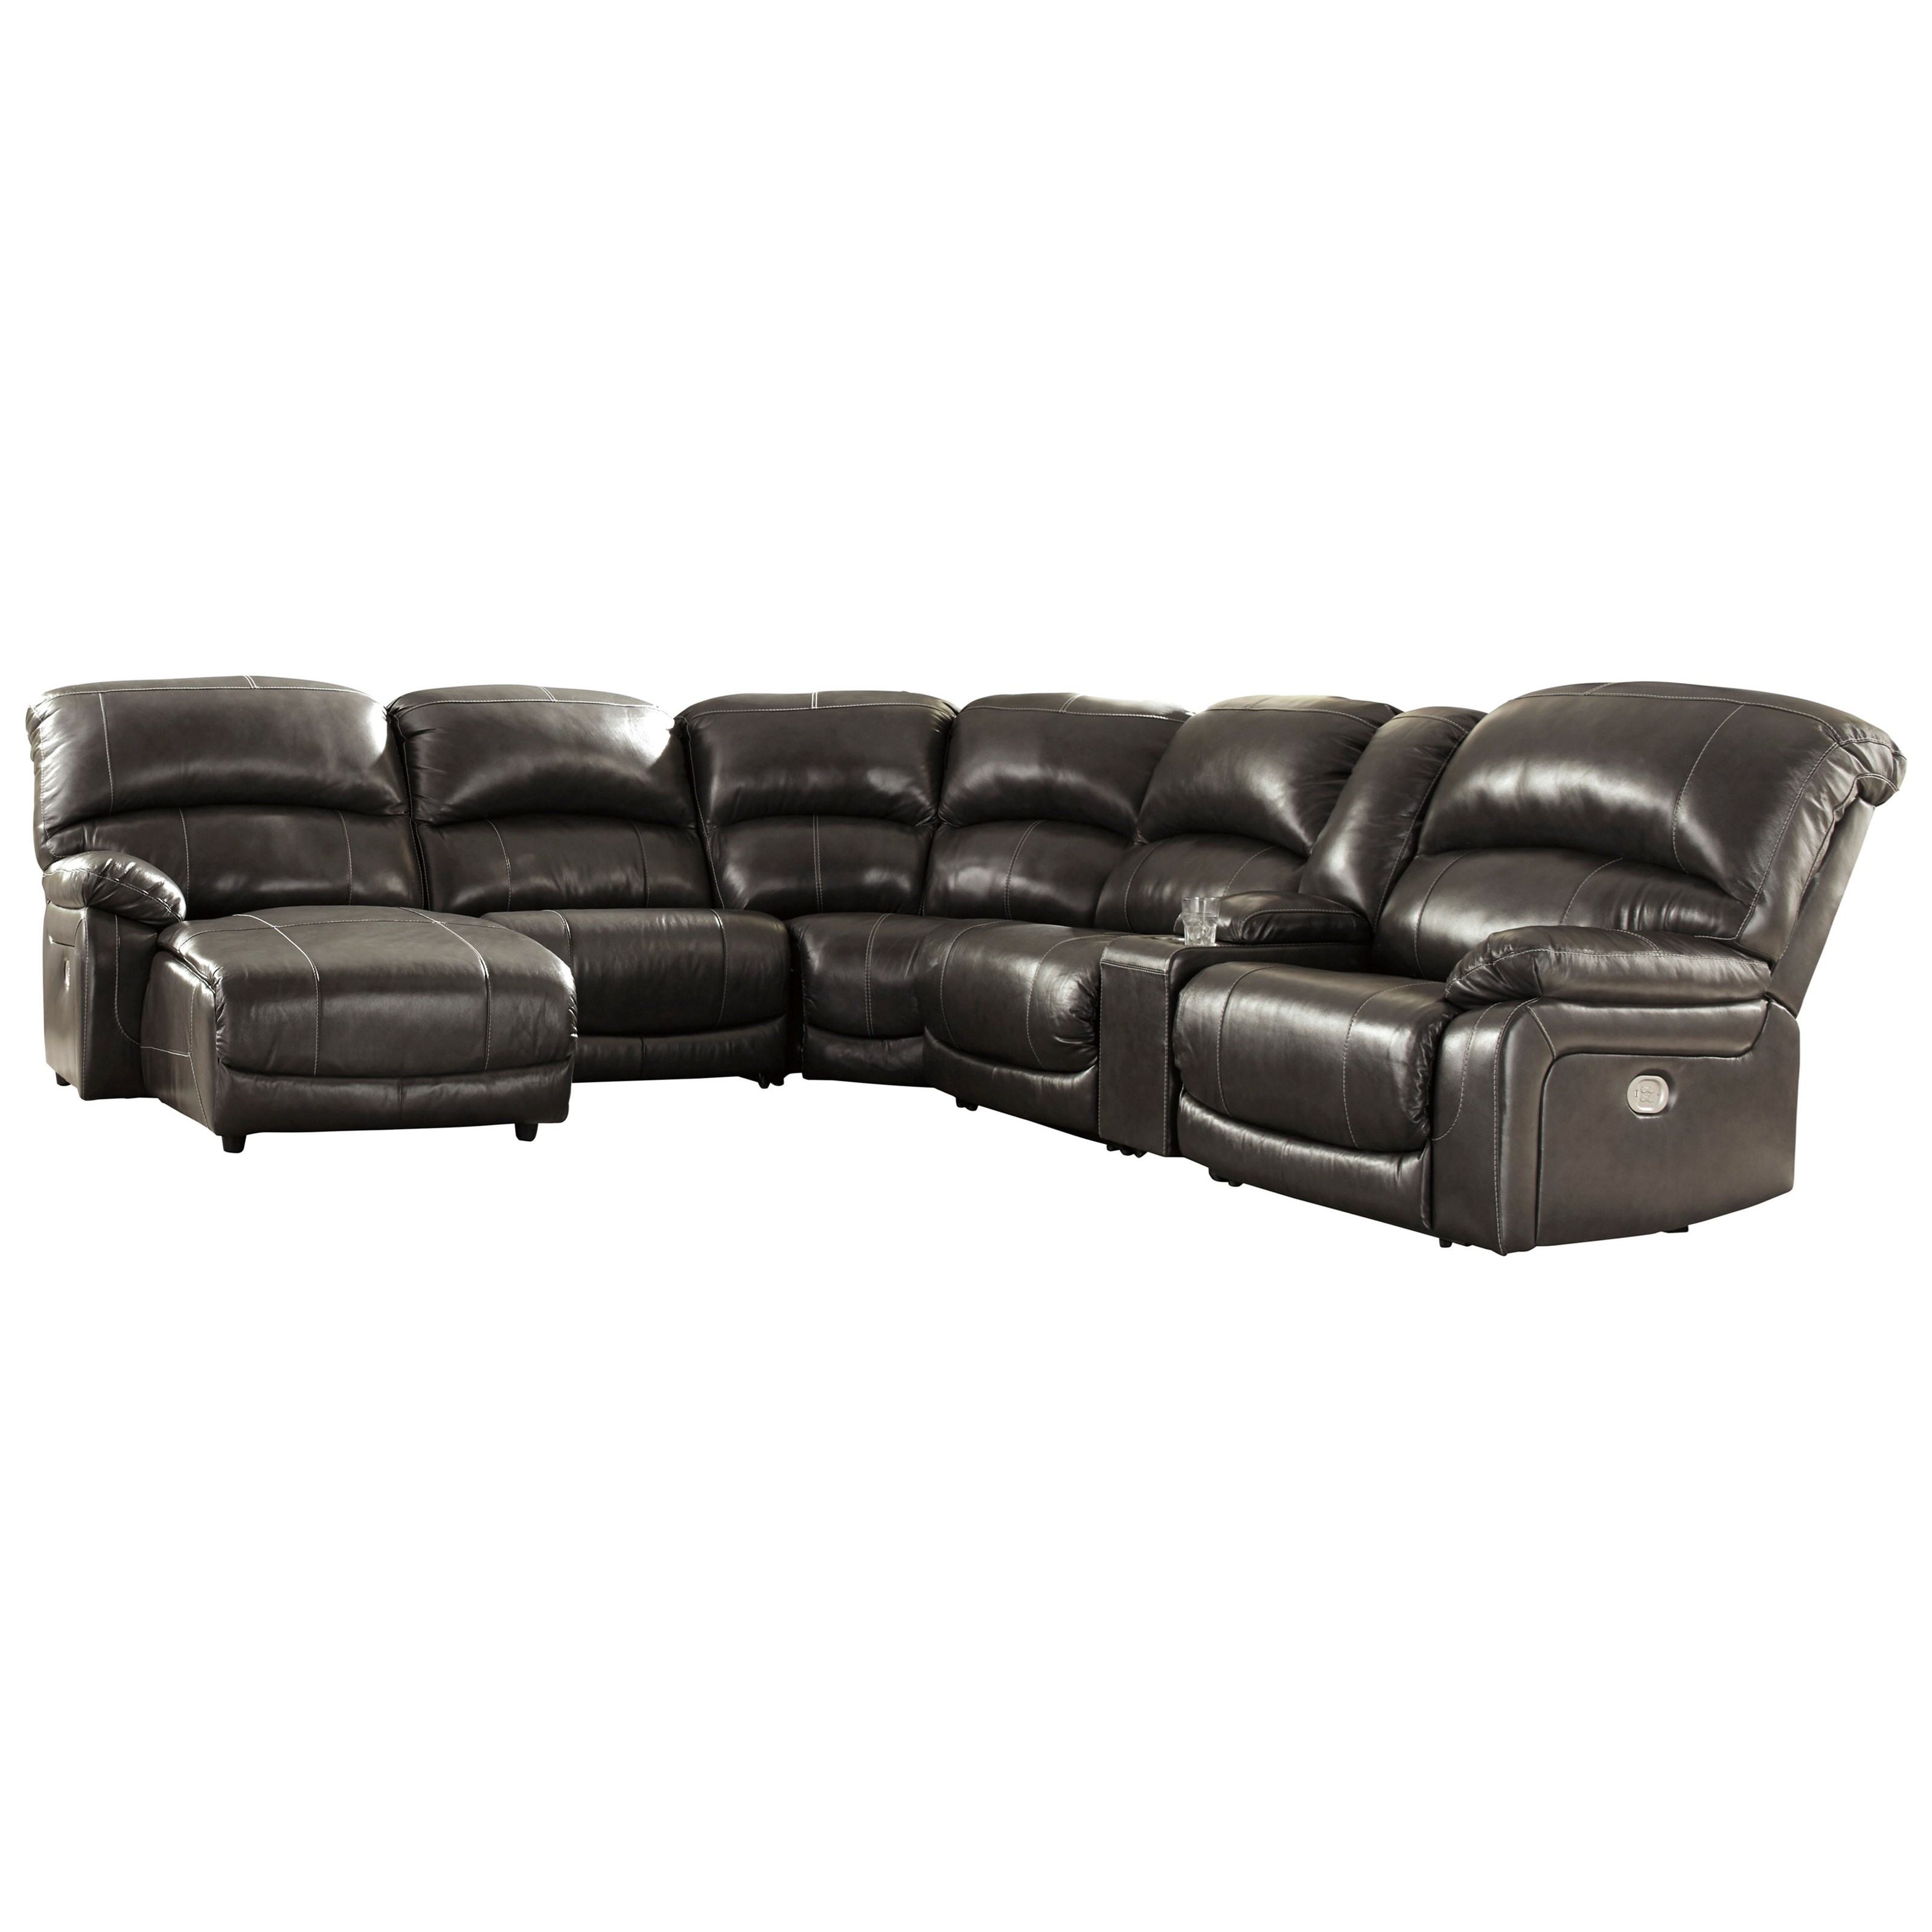 Hallstrung 6-Piece Reclining Sectional with Chaise by Ashley (Signature Design) at Johnny Janosik